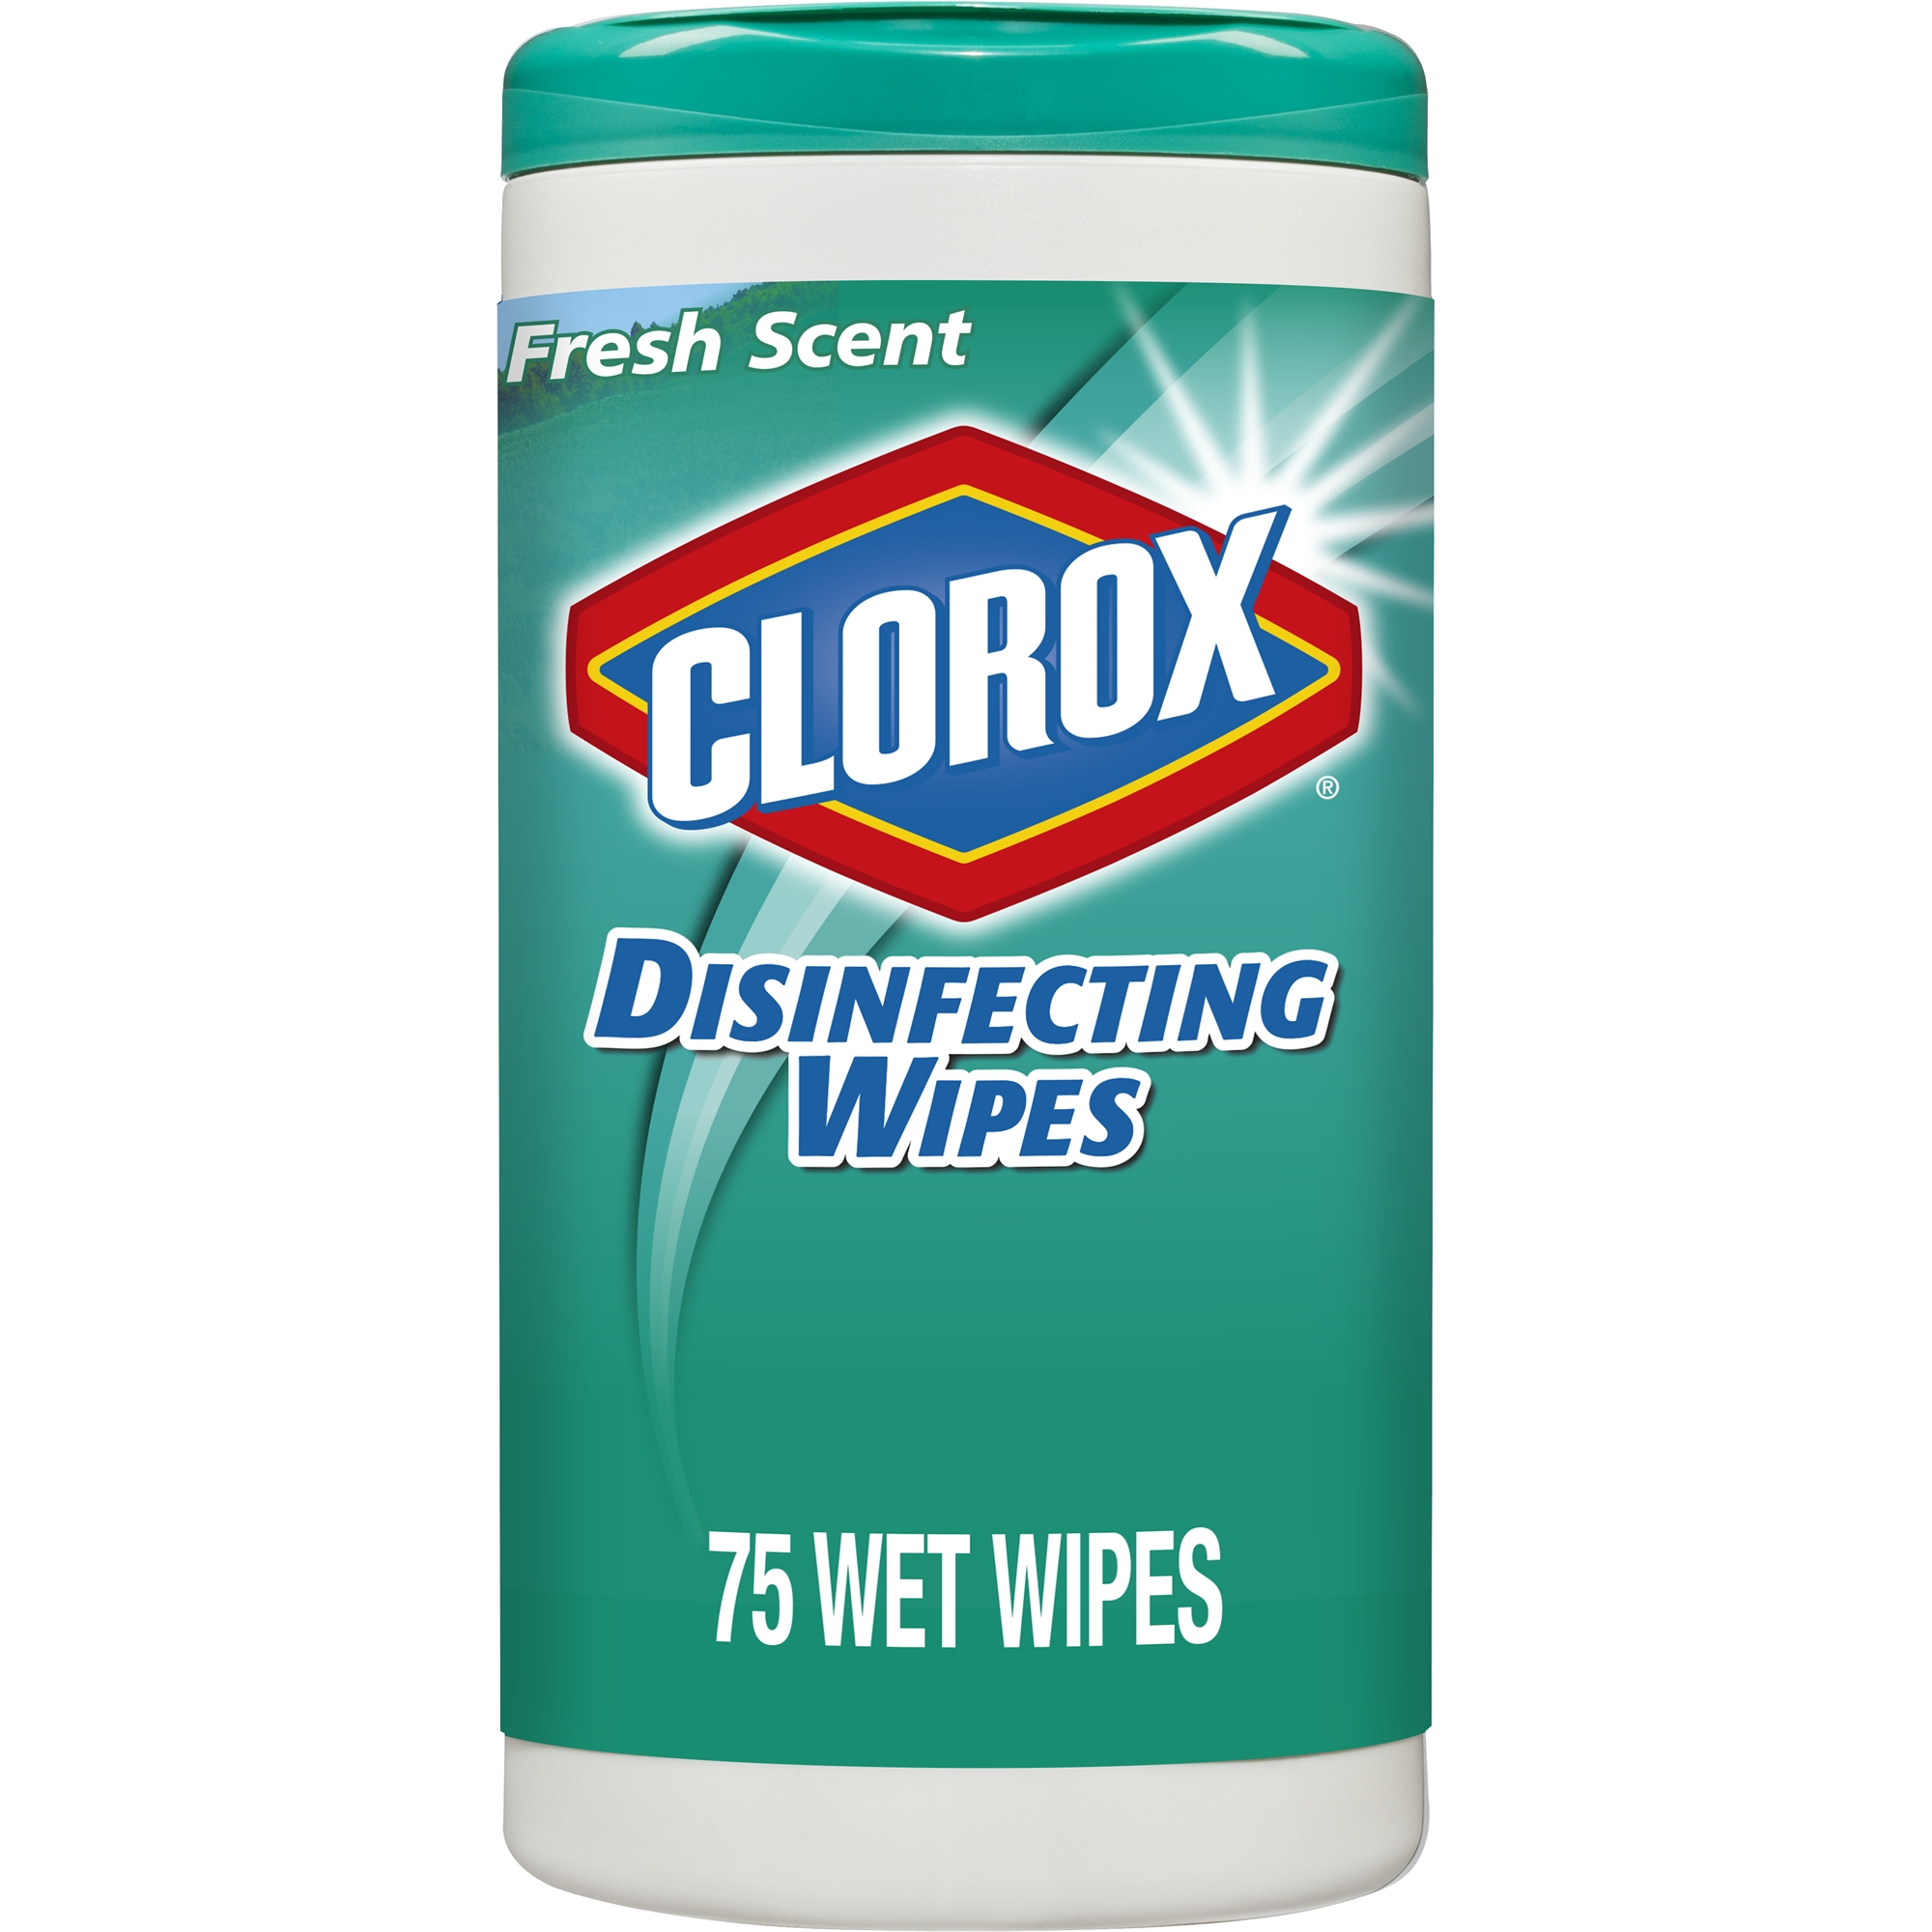 Clorox Disinfecting Wipes, Bleach Free Cleaning Wipes - Fresh Scent, 75 ct